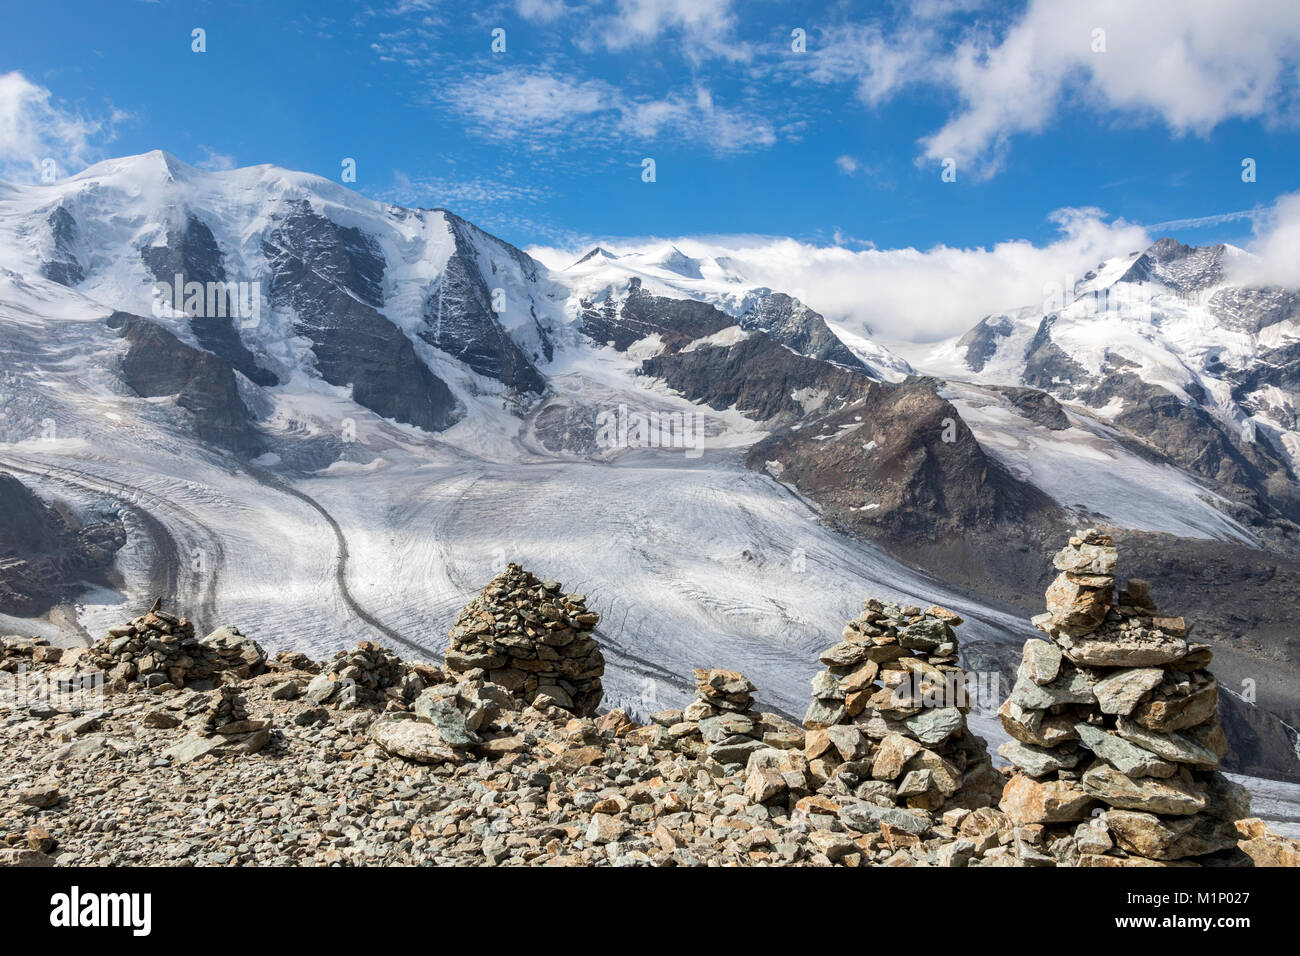 Overview of the Diavolezza and Pers glaciers and Piz Palu, St. Moritz, canton of Graubunden, Engadine, Switzerland, - Stock Image